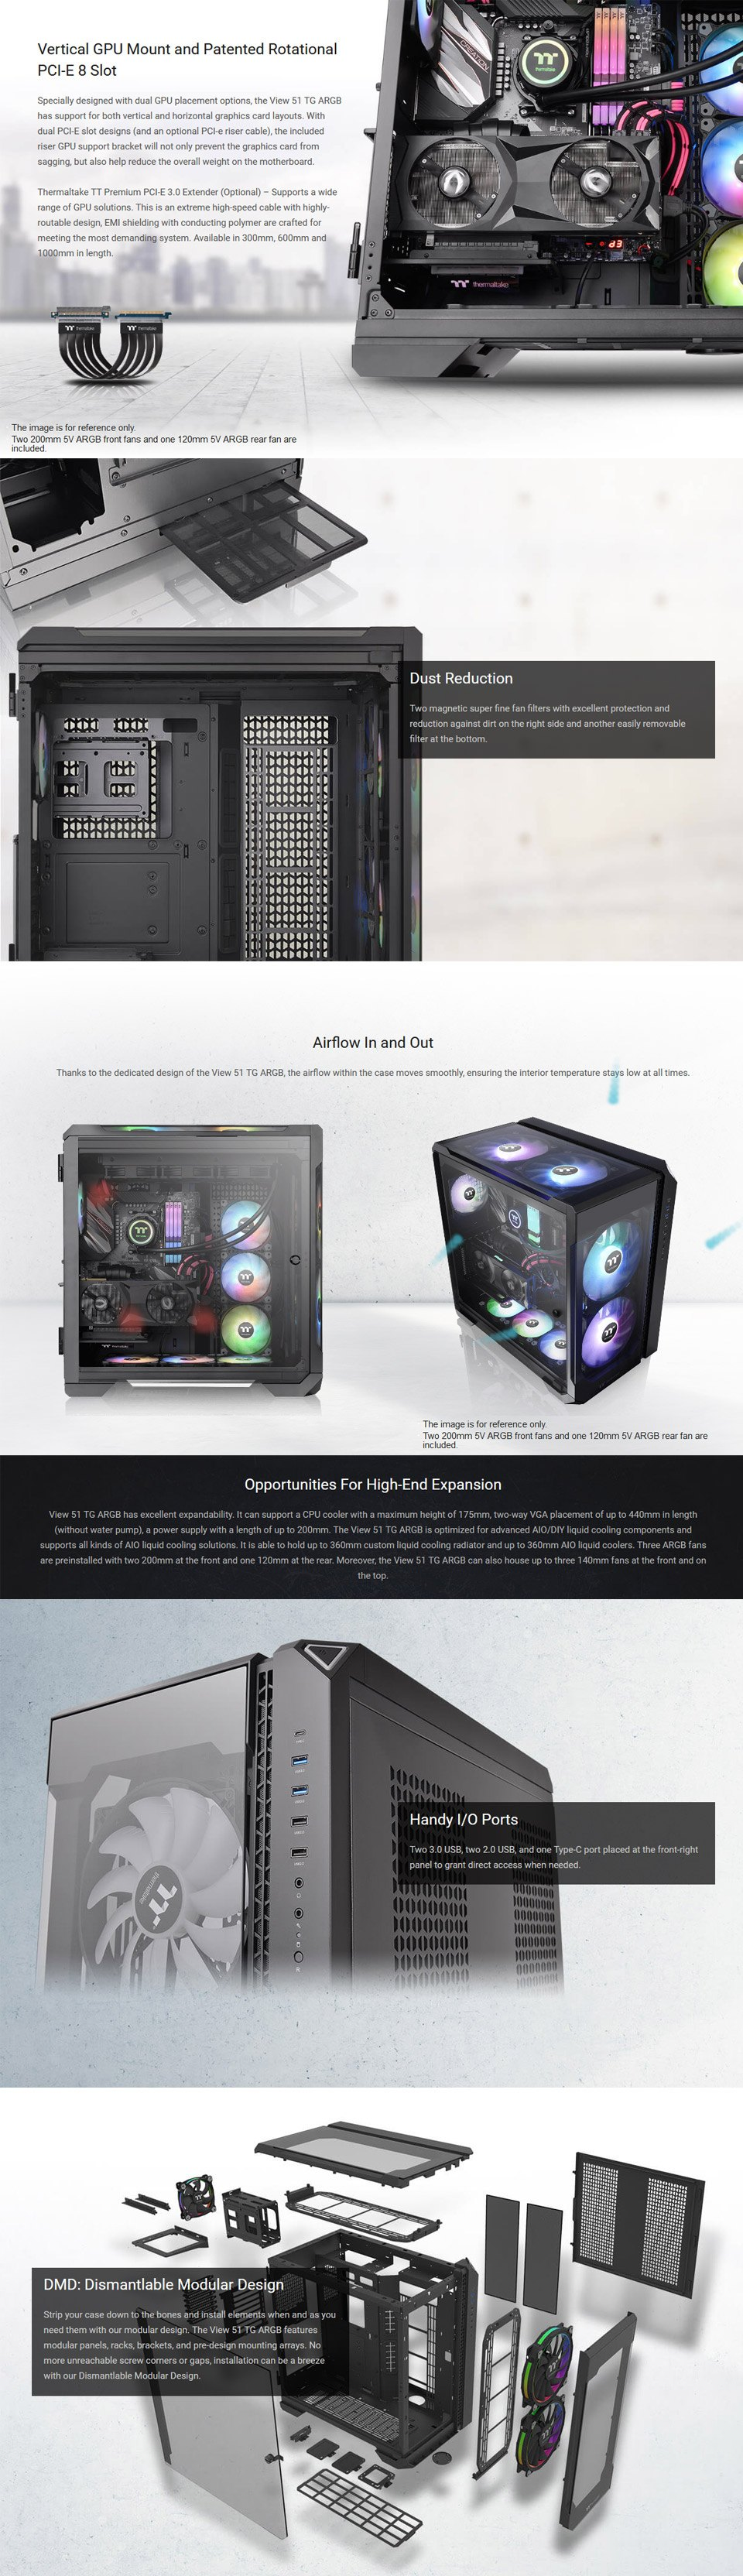 Thermaltake View 51 A-RGB Tempered Glass Case Black features 2